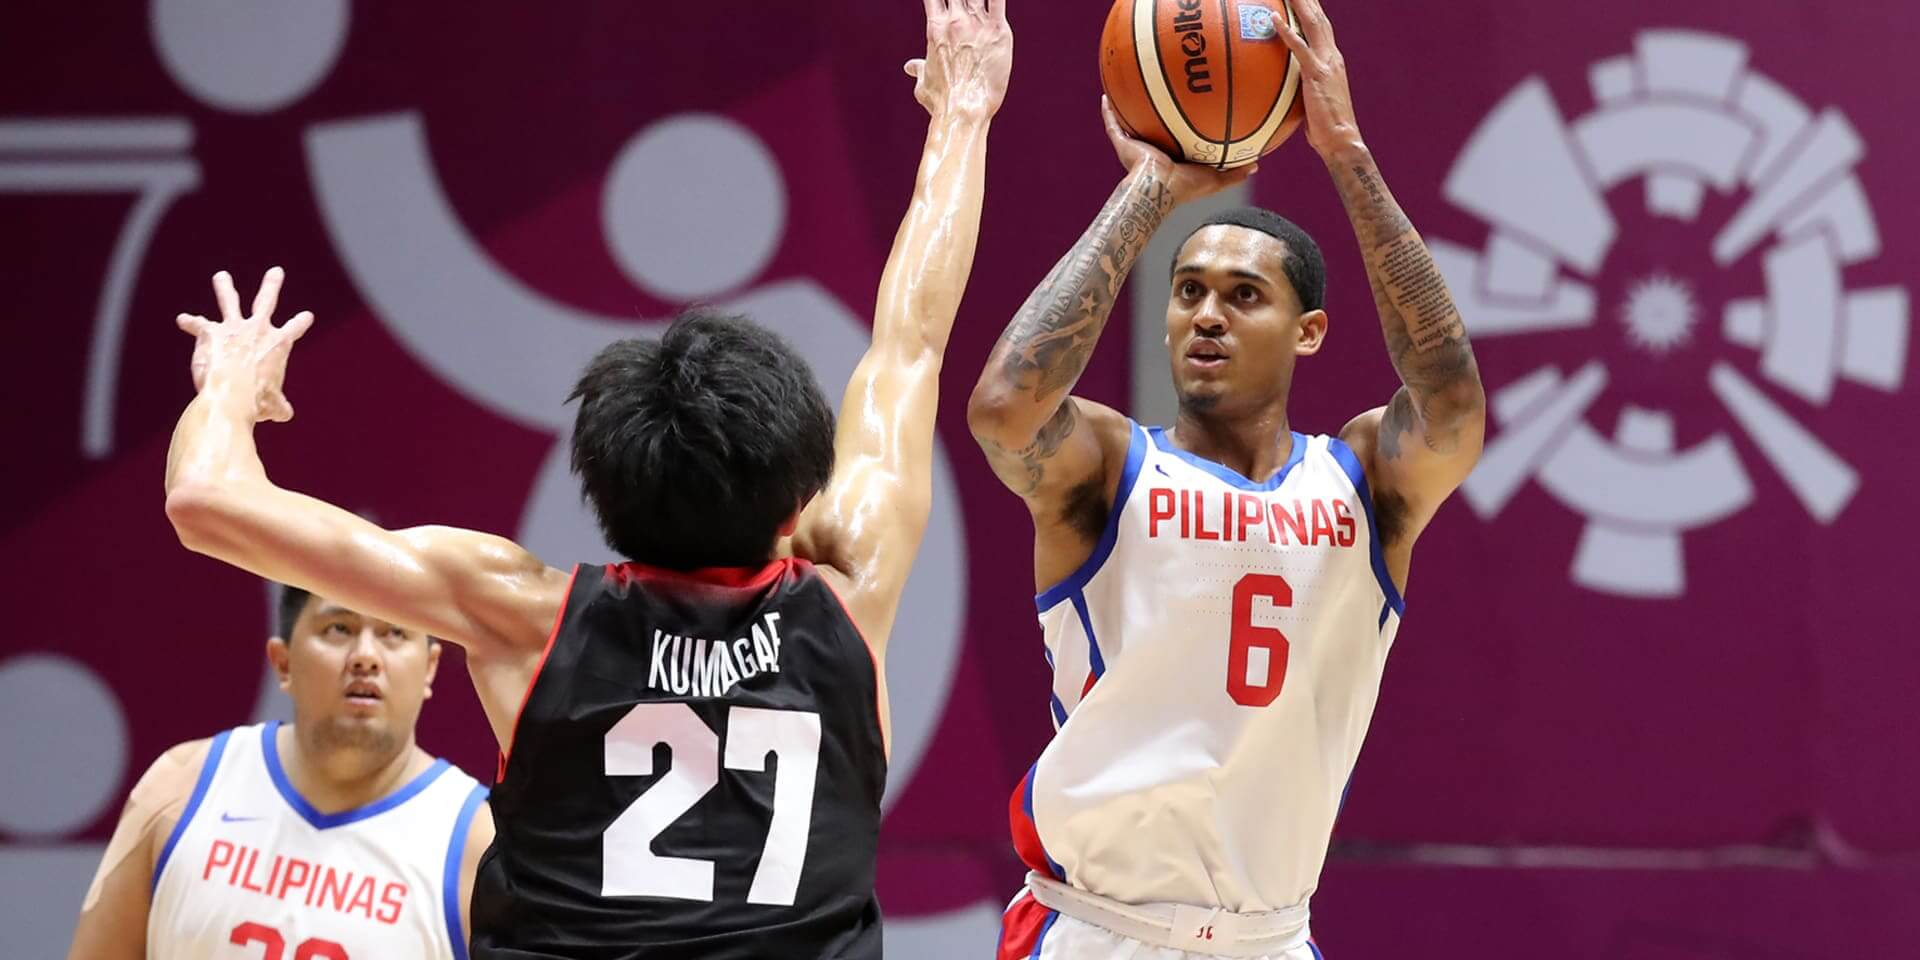 20c61f4a603 The Philippines continued to drop buckets in the third quarter. They didn't  need a Clarkson explosion this time around as it was a total team effort.